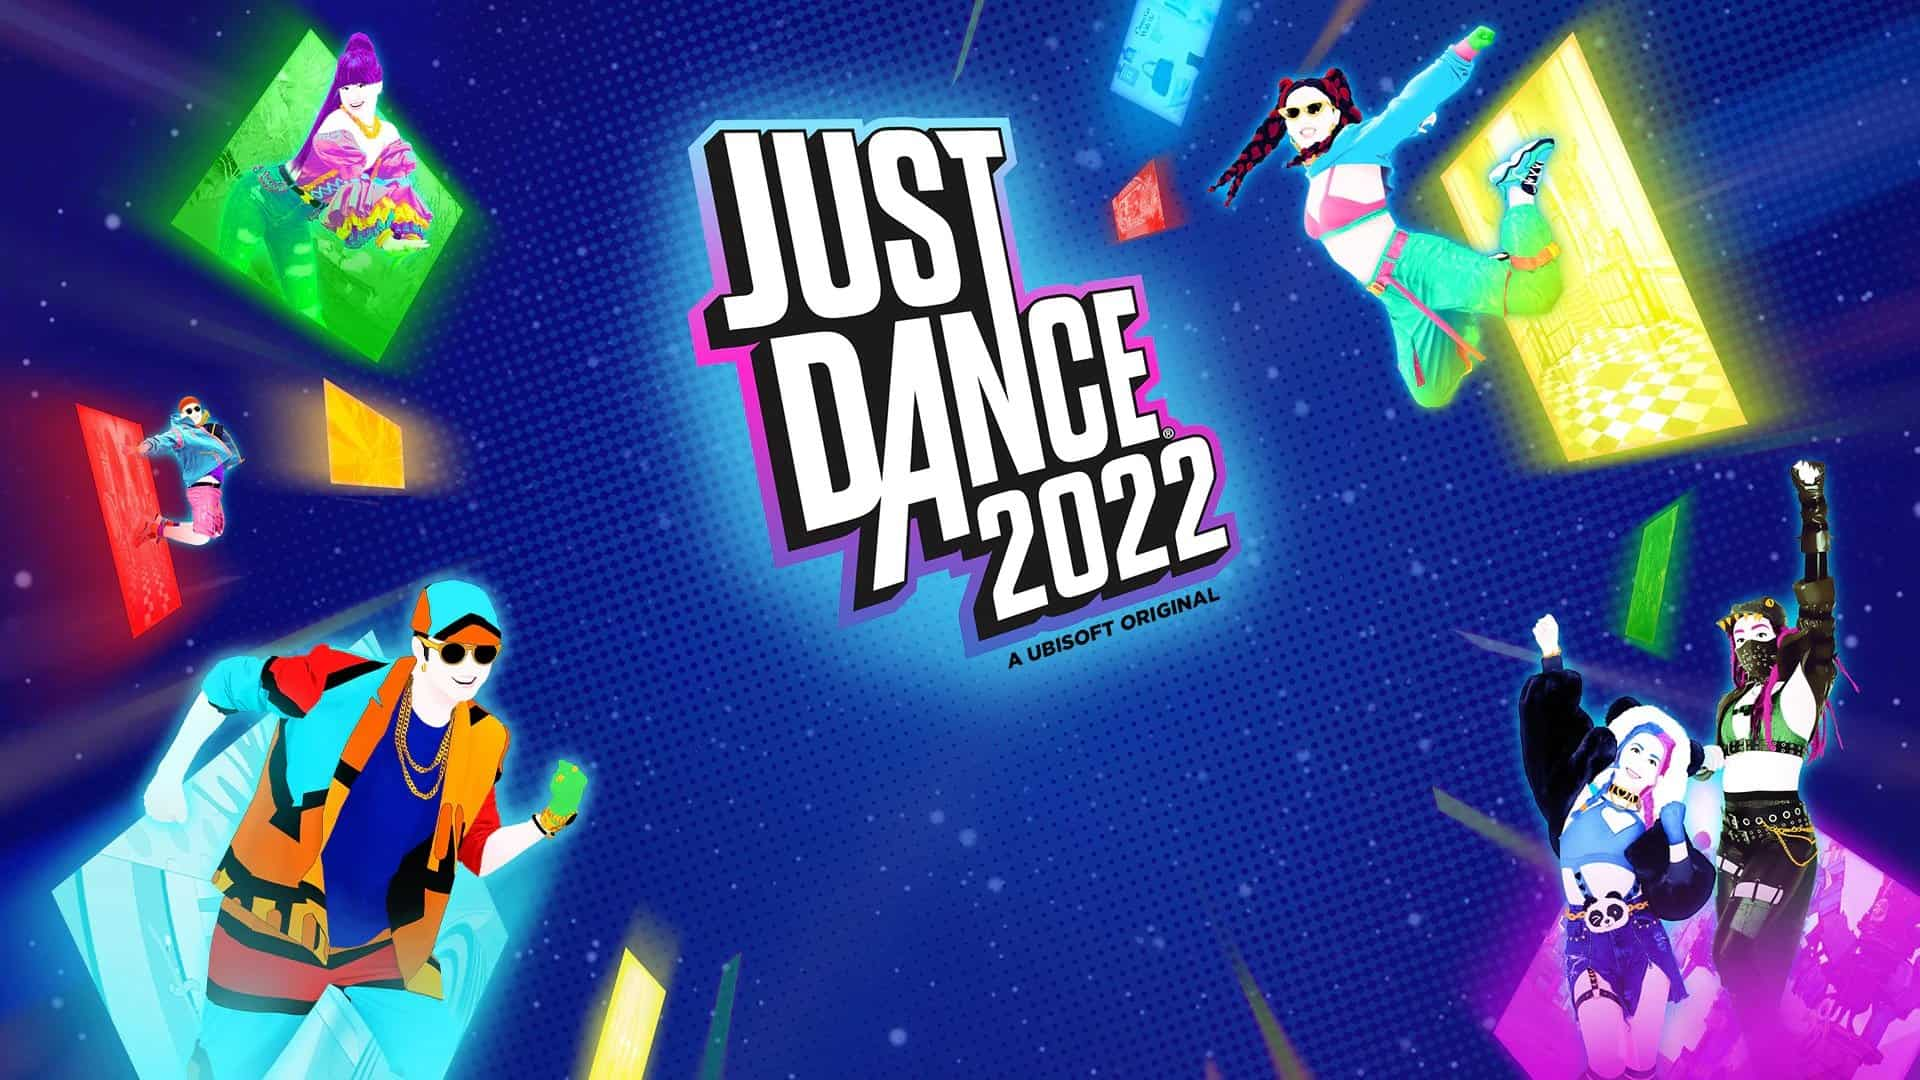 E3 2021: Just Dance will still be there with a new version